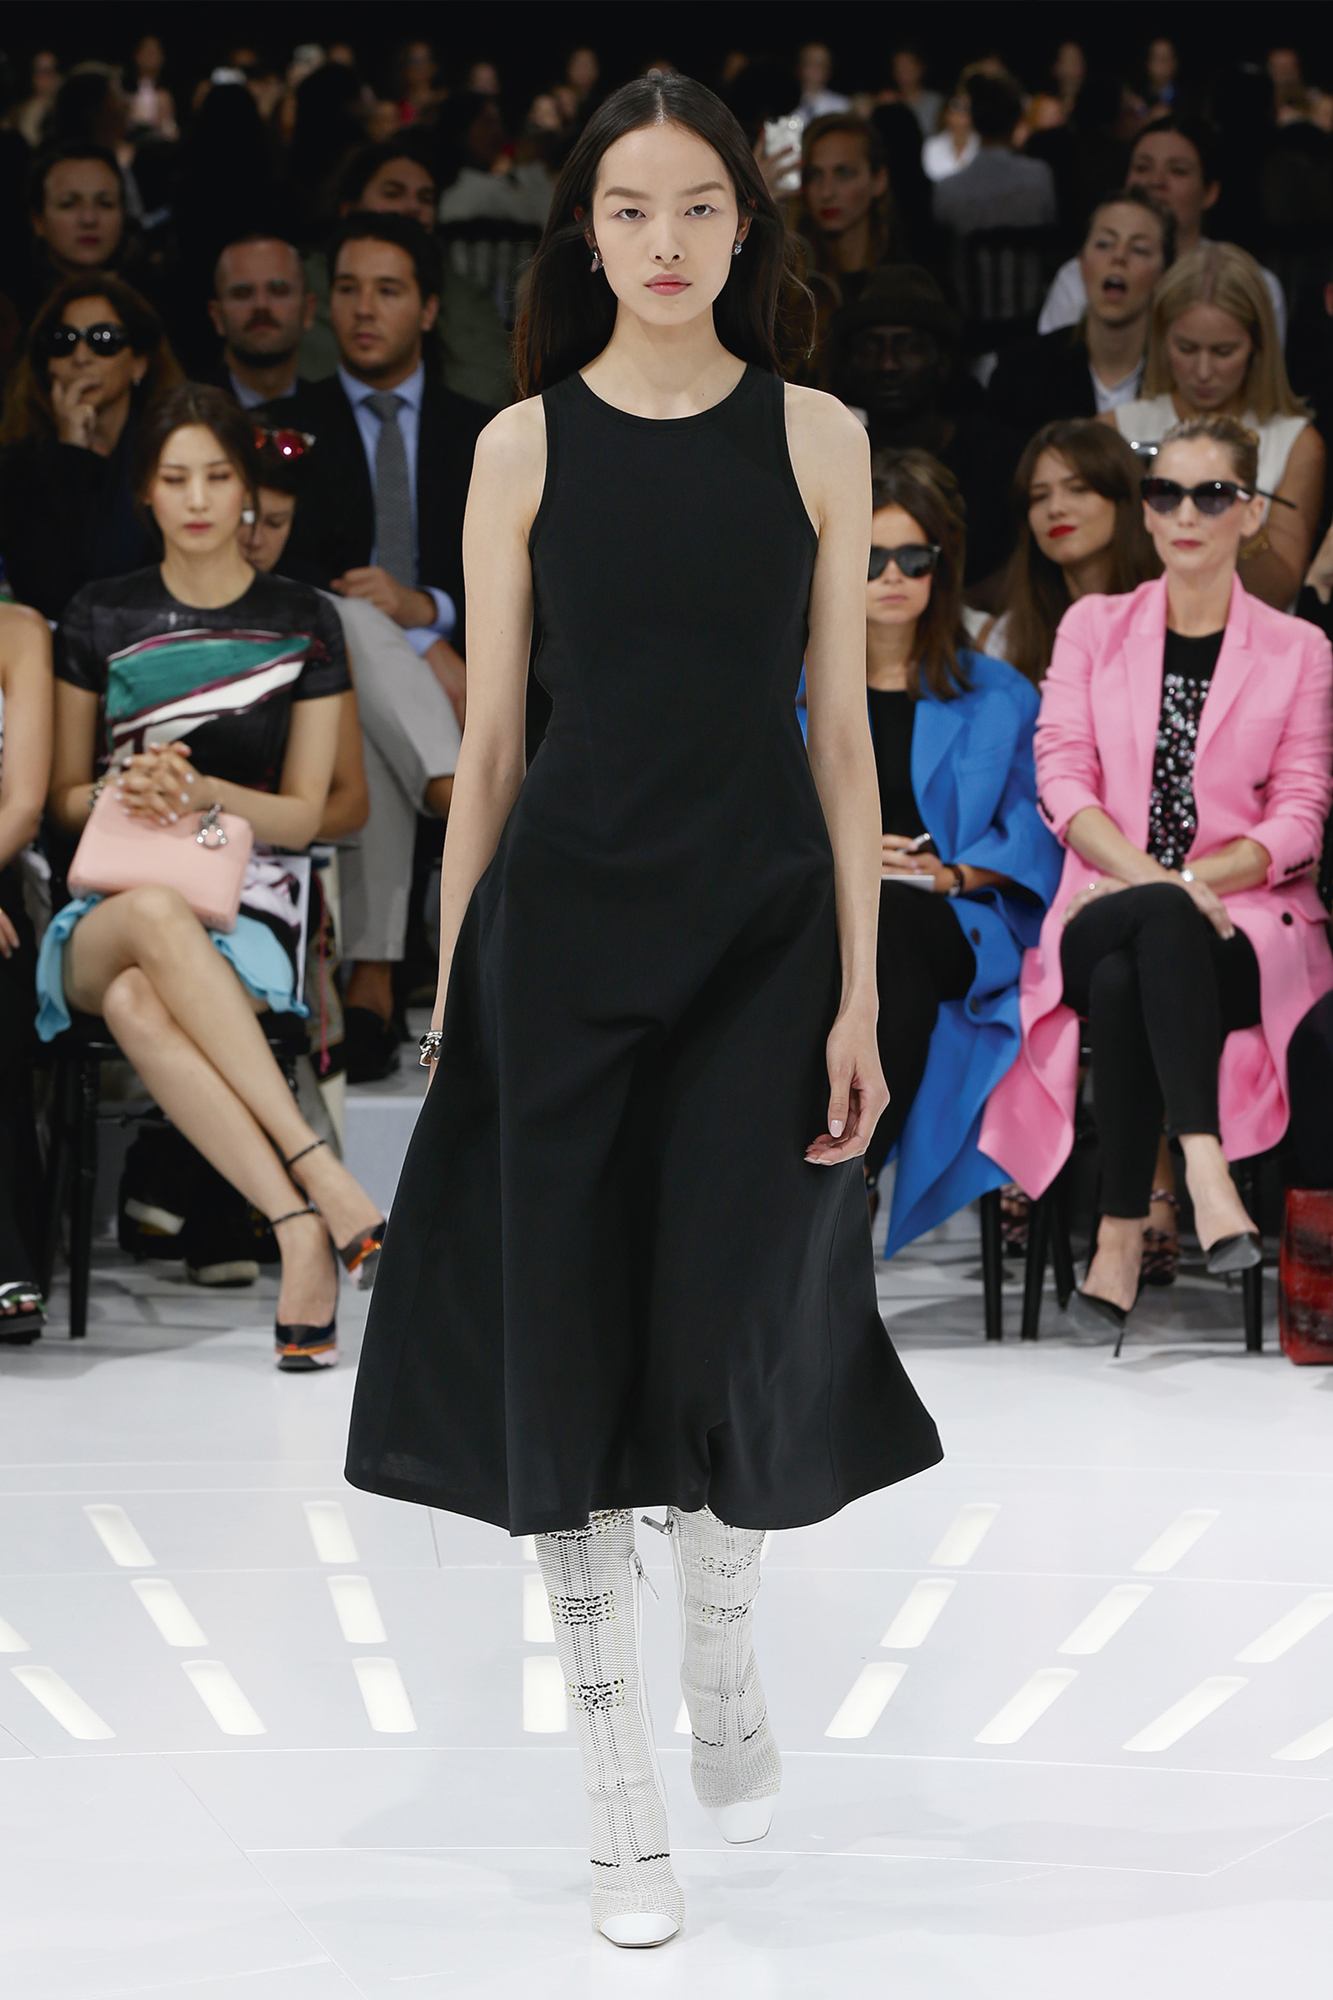 New Western Fashion Christian Dior Ready To Wear Dresses Spring Summer Collection 2015 (7)